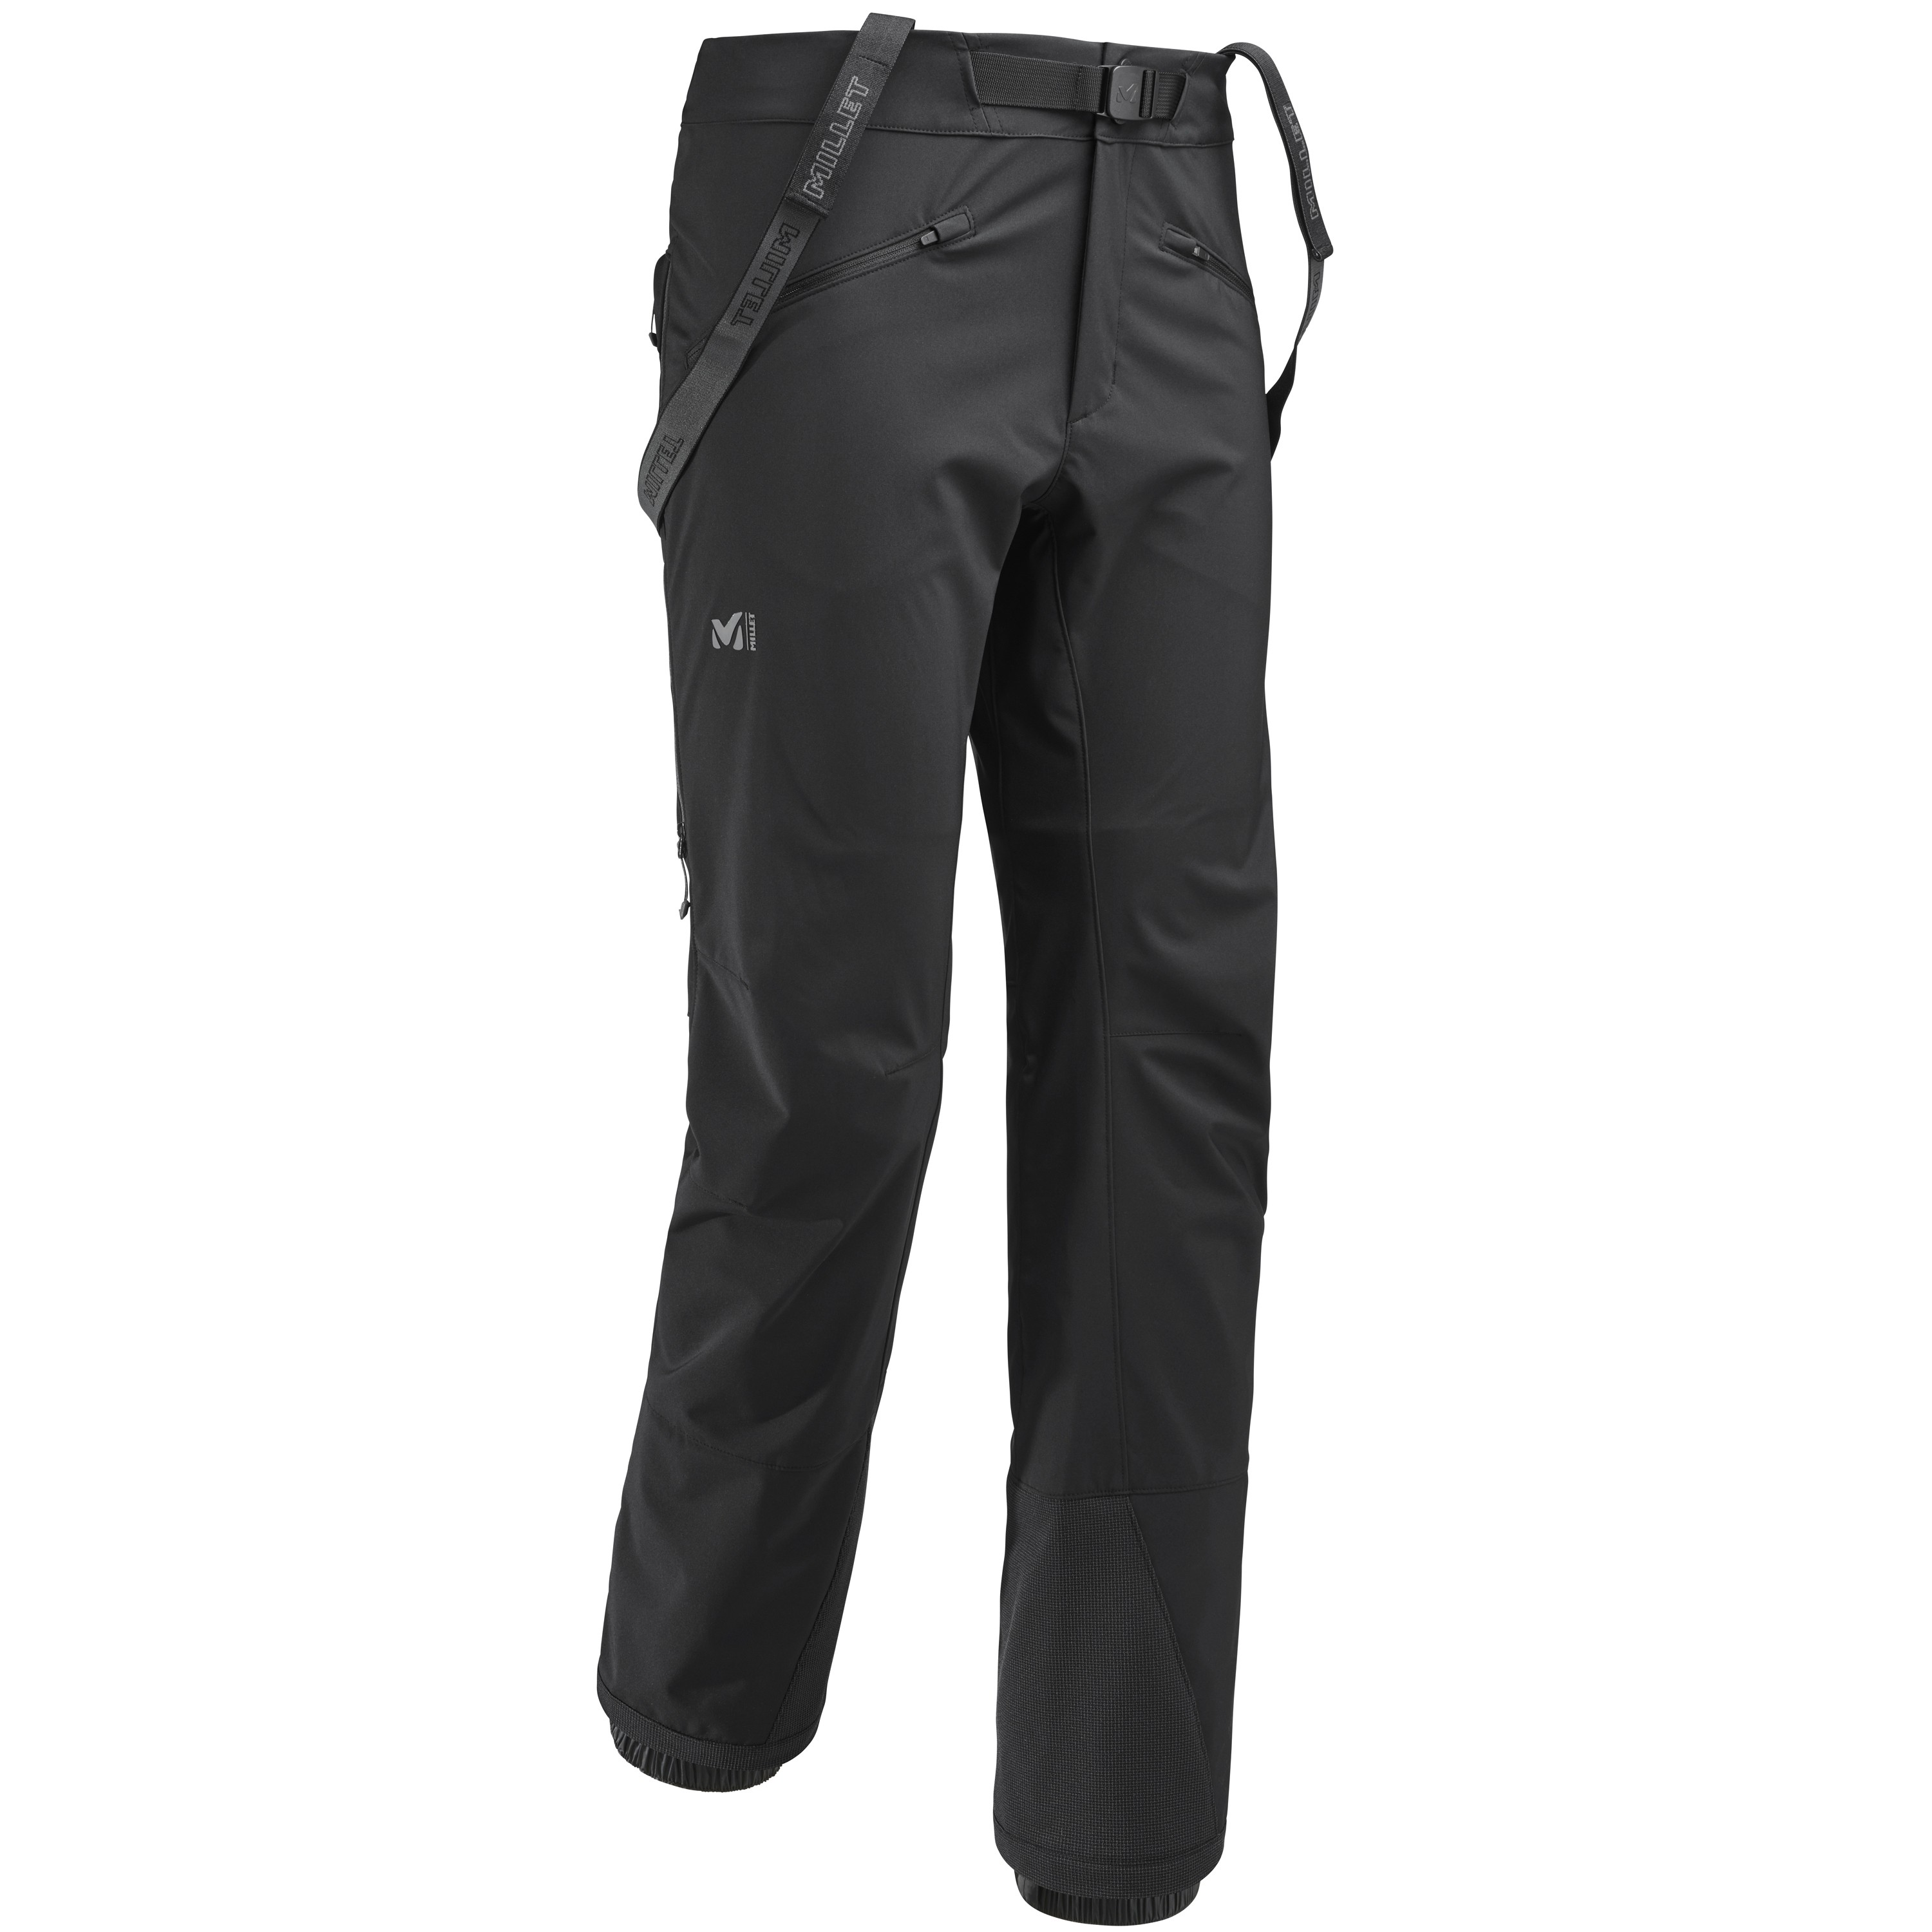 NEEDLES SHIELD PANT M